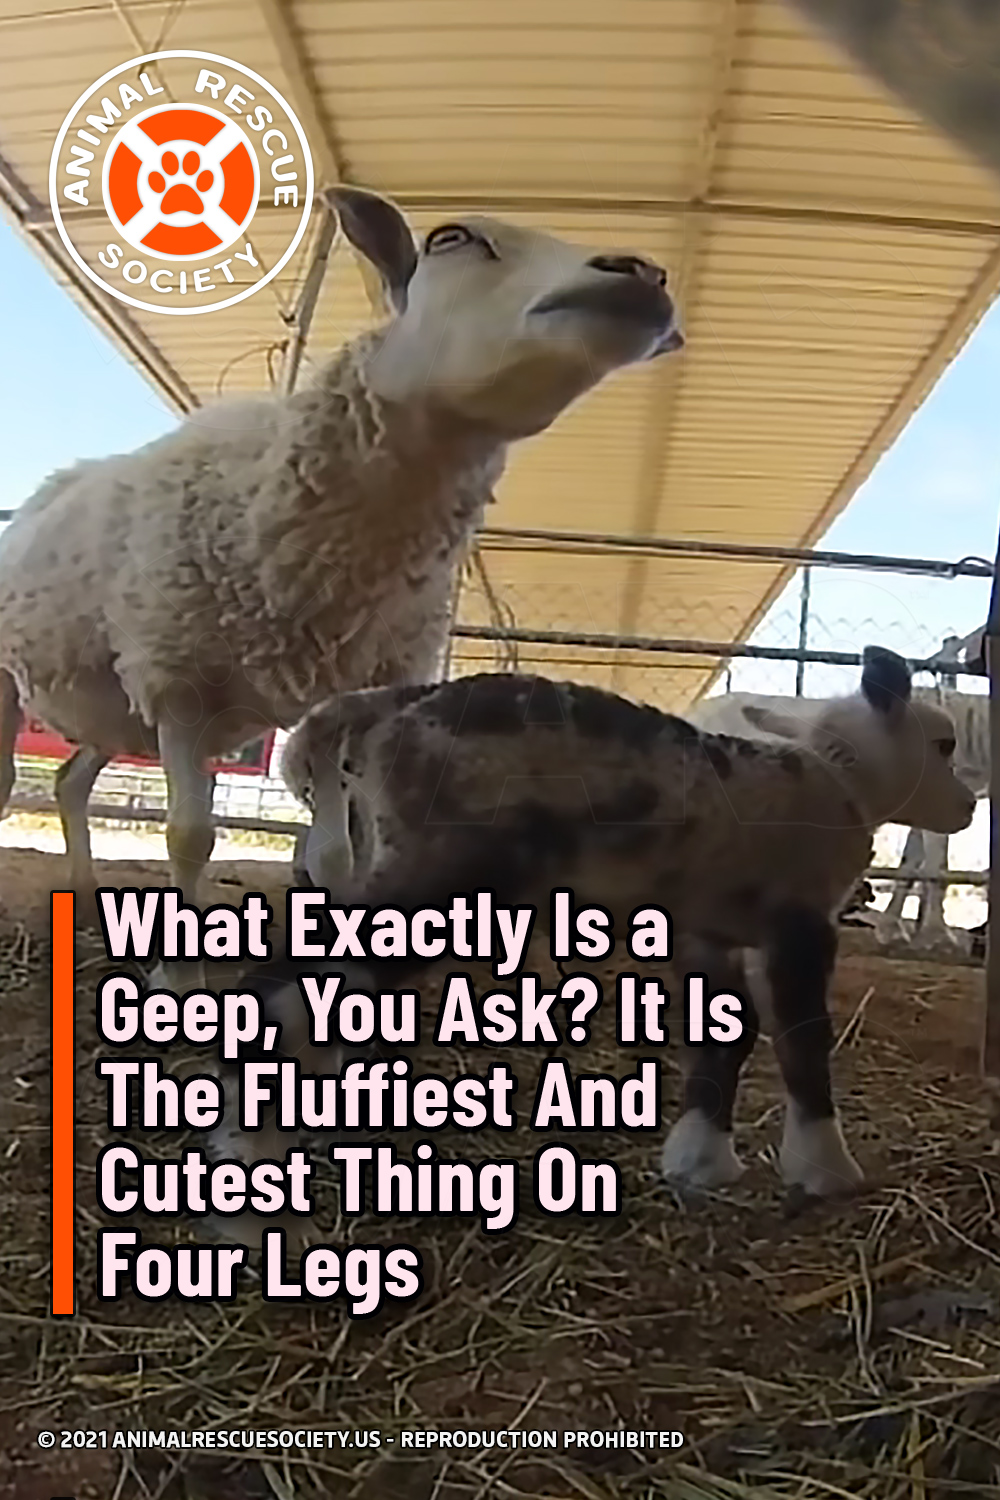 What Exactly Is a Geep, You Ask? It Is The Fluffiest And Cutest Thing On Four Legs